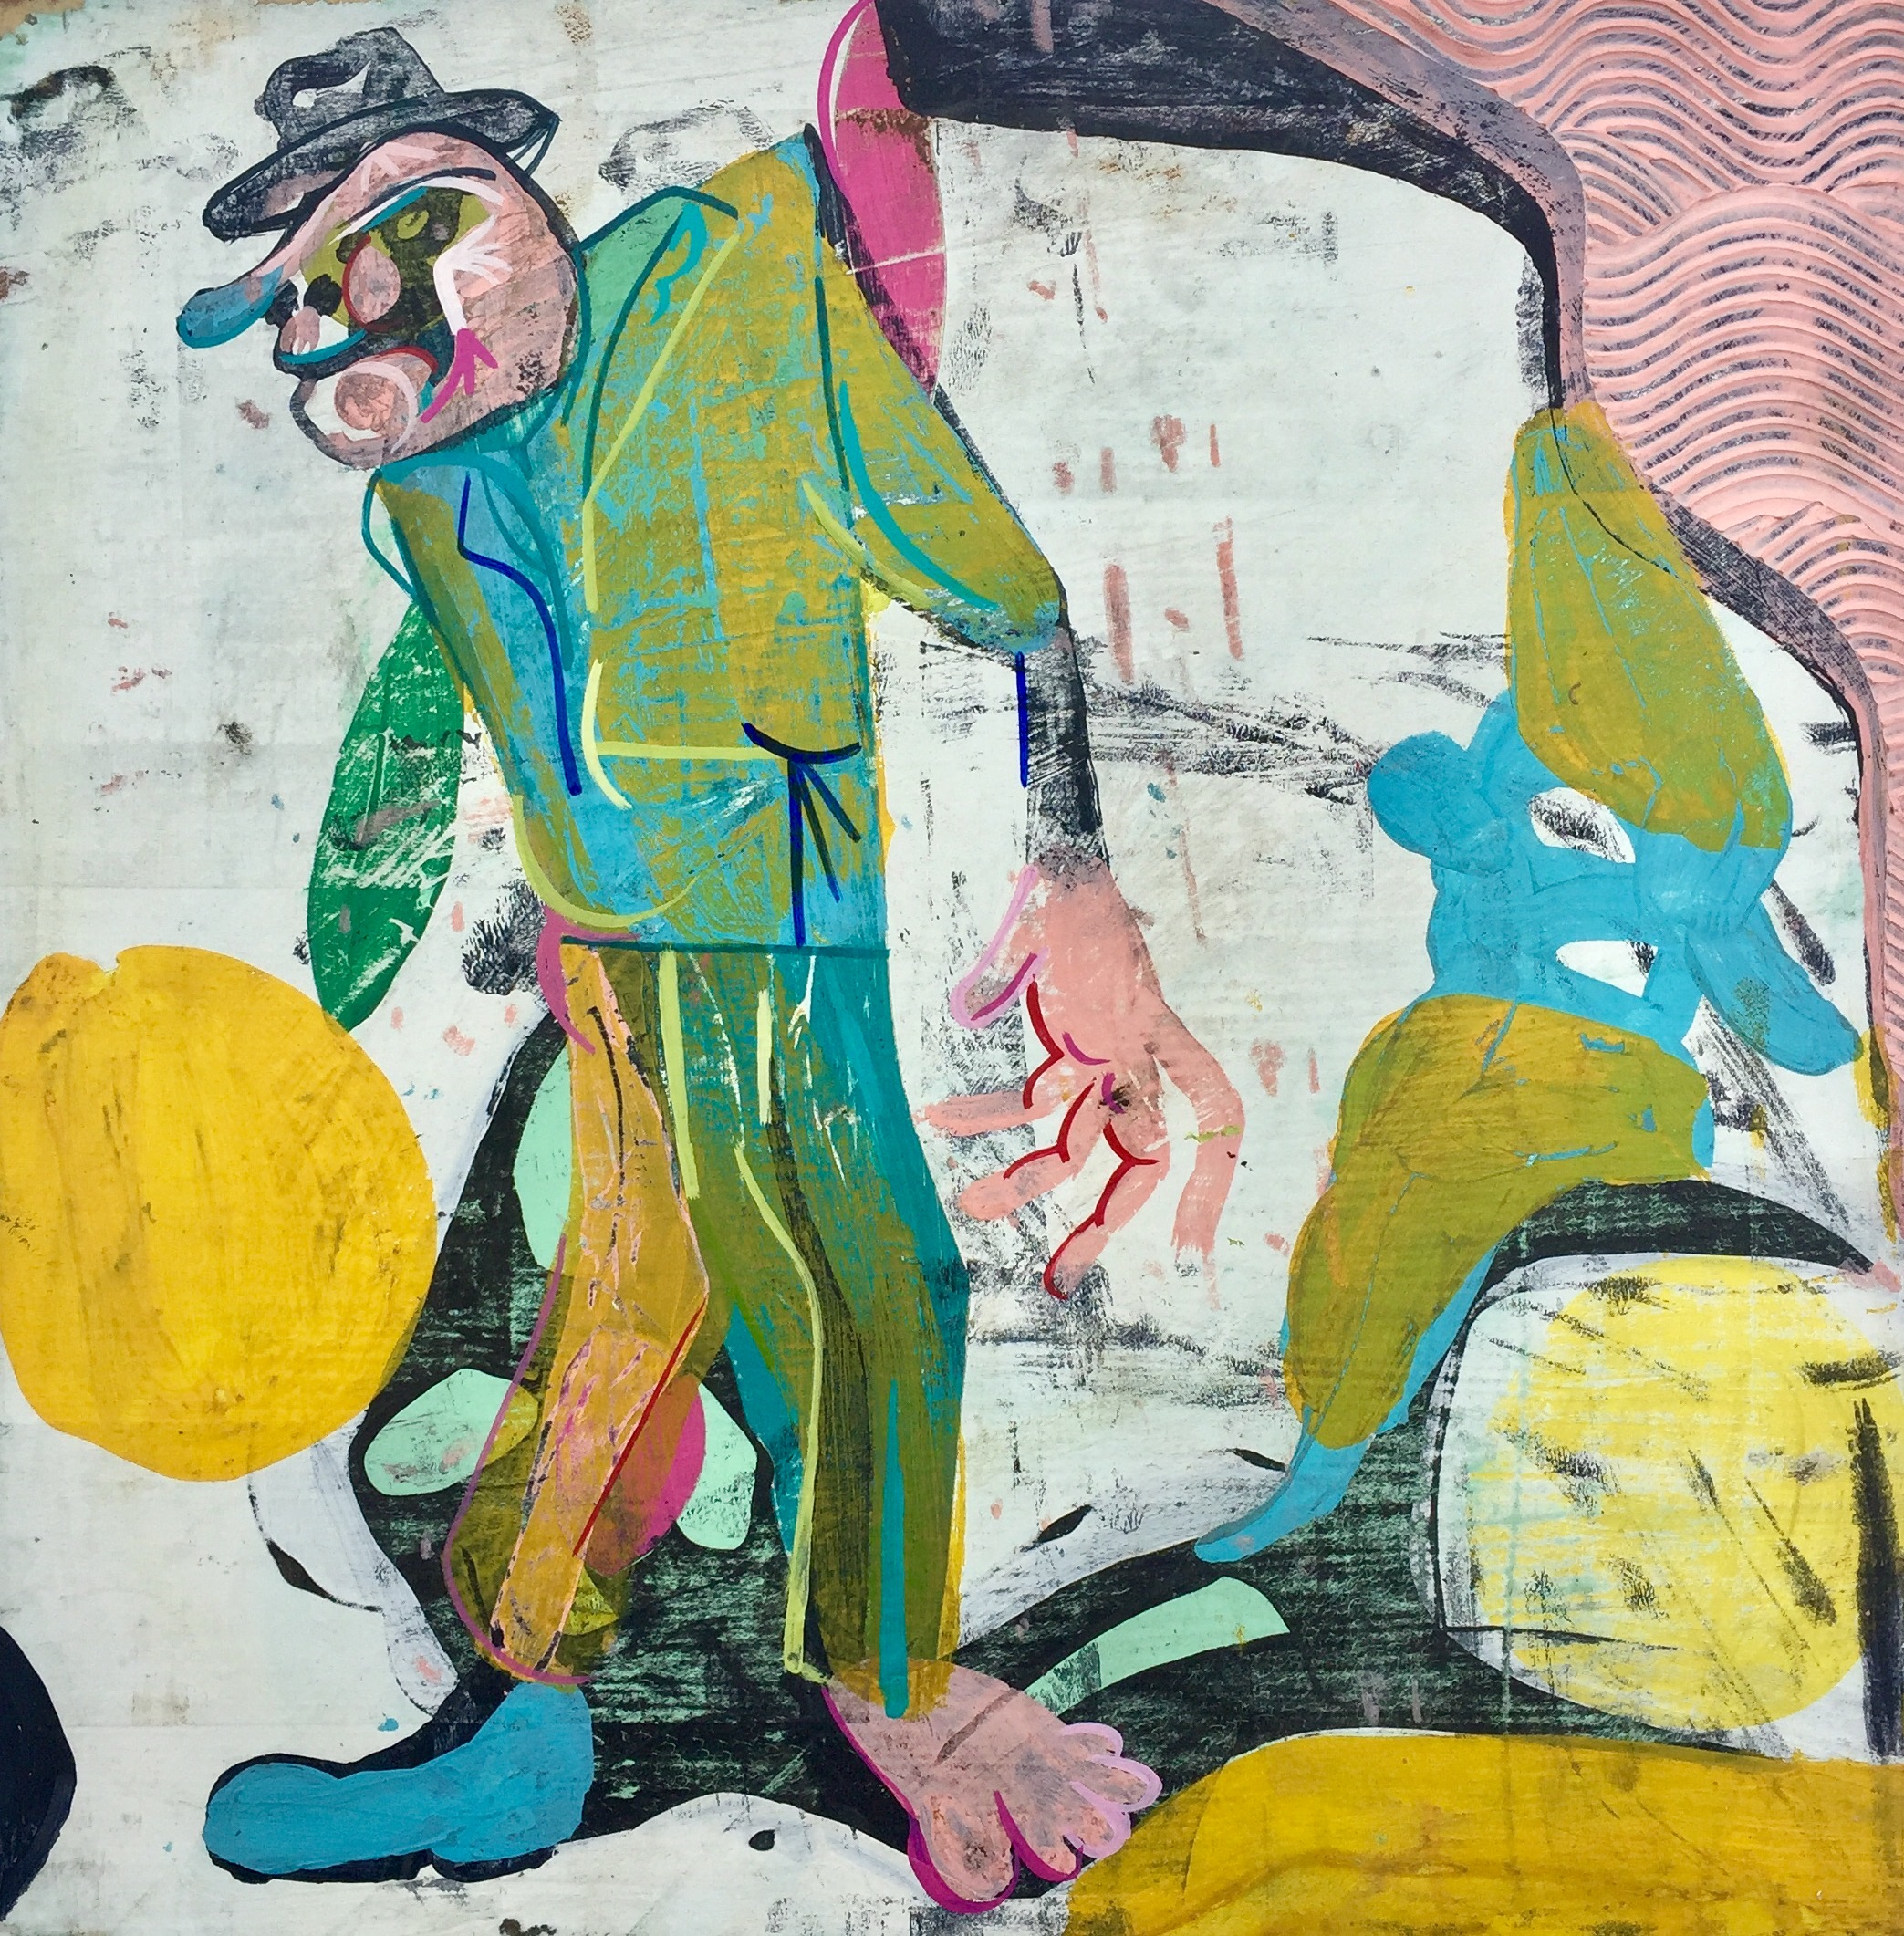 Stand Up     Mixed media on wood panel  2014  11.75 x 11.75 In  $4,000.00